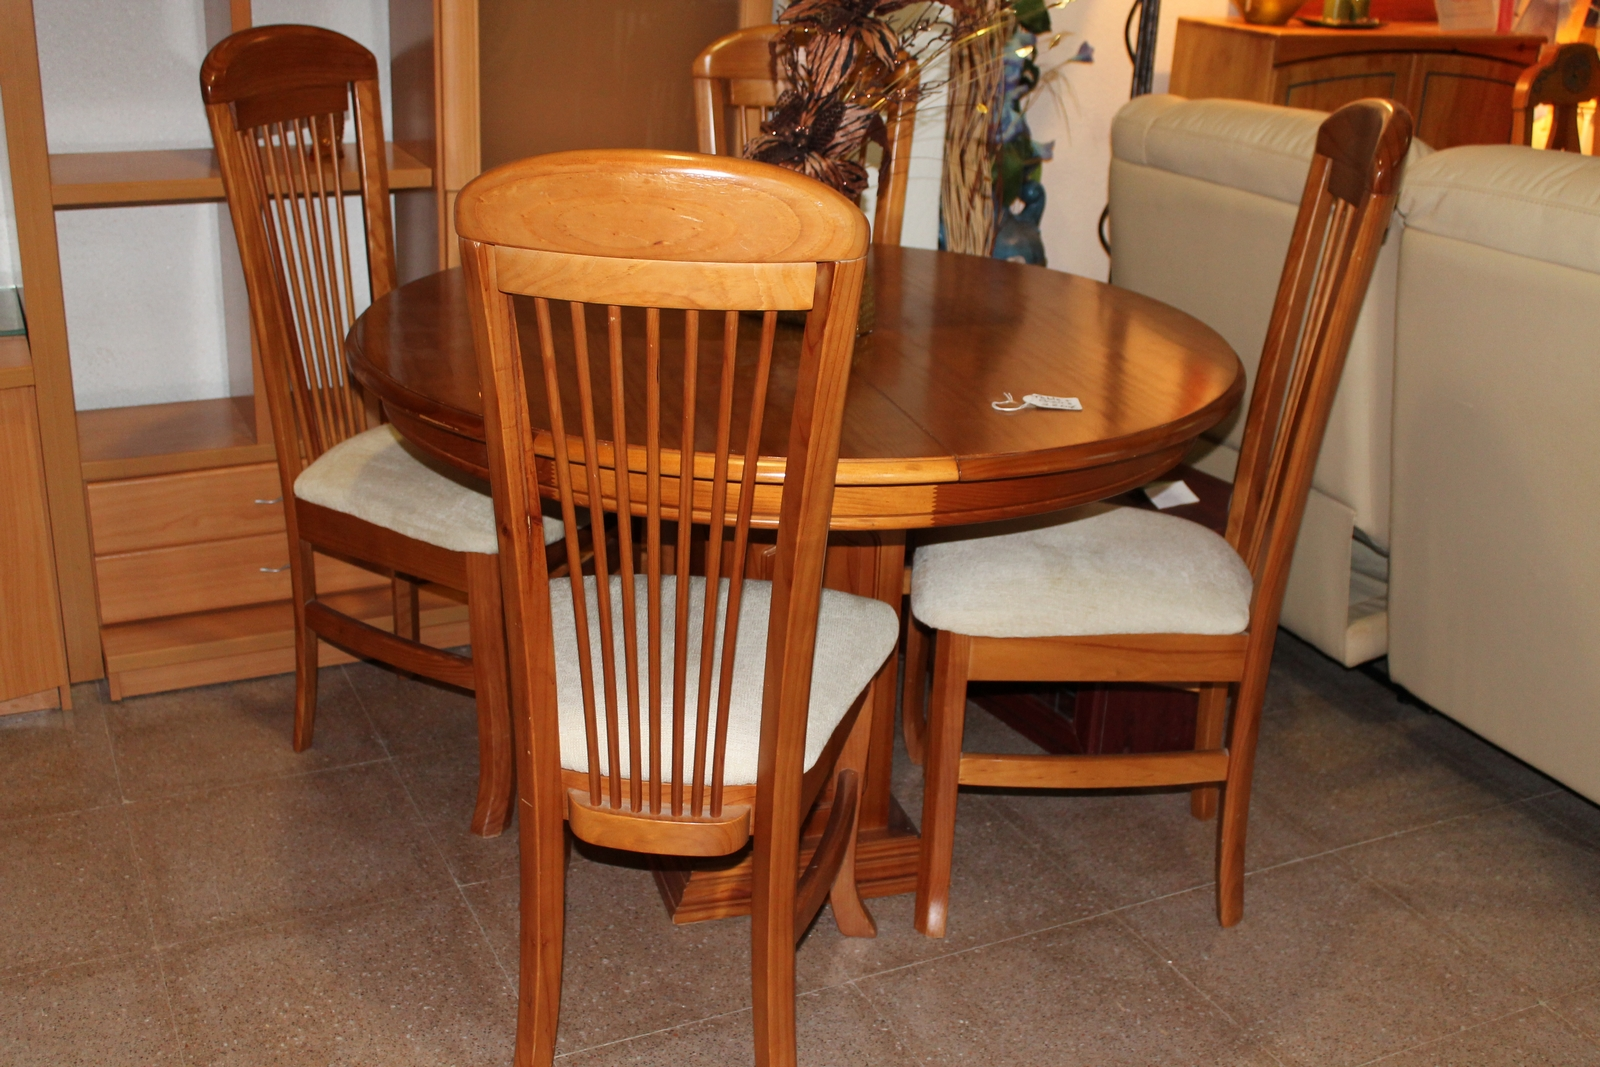 New2You Furniture Second Hand Tables Chairs For The Dining Room Living R